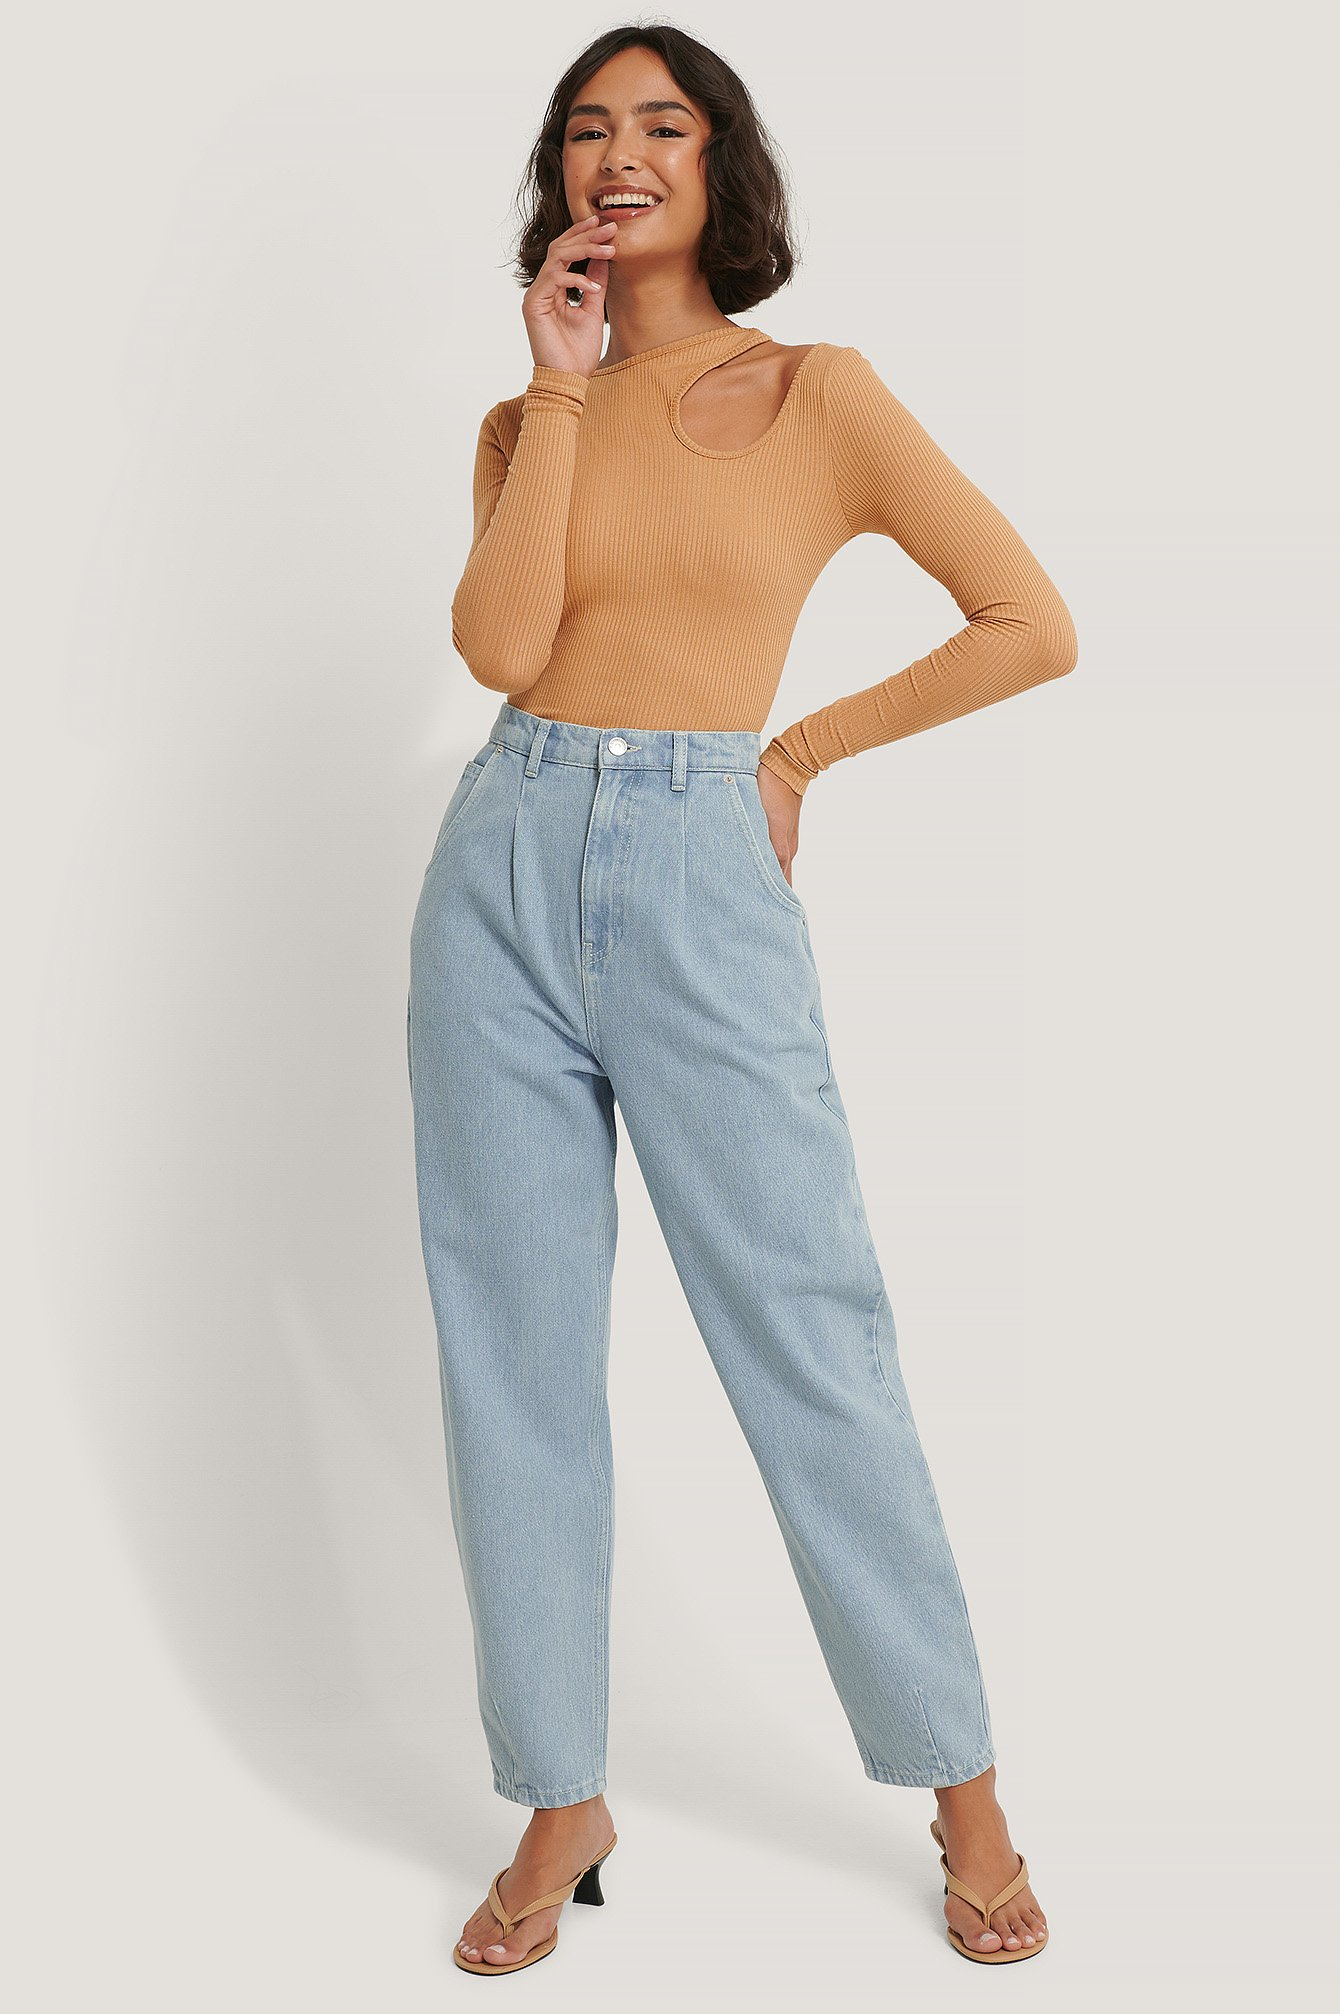 Light Blue Cropped Balloon Leg Jeans